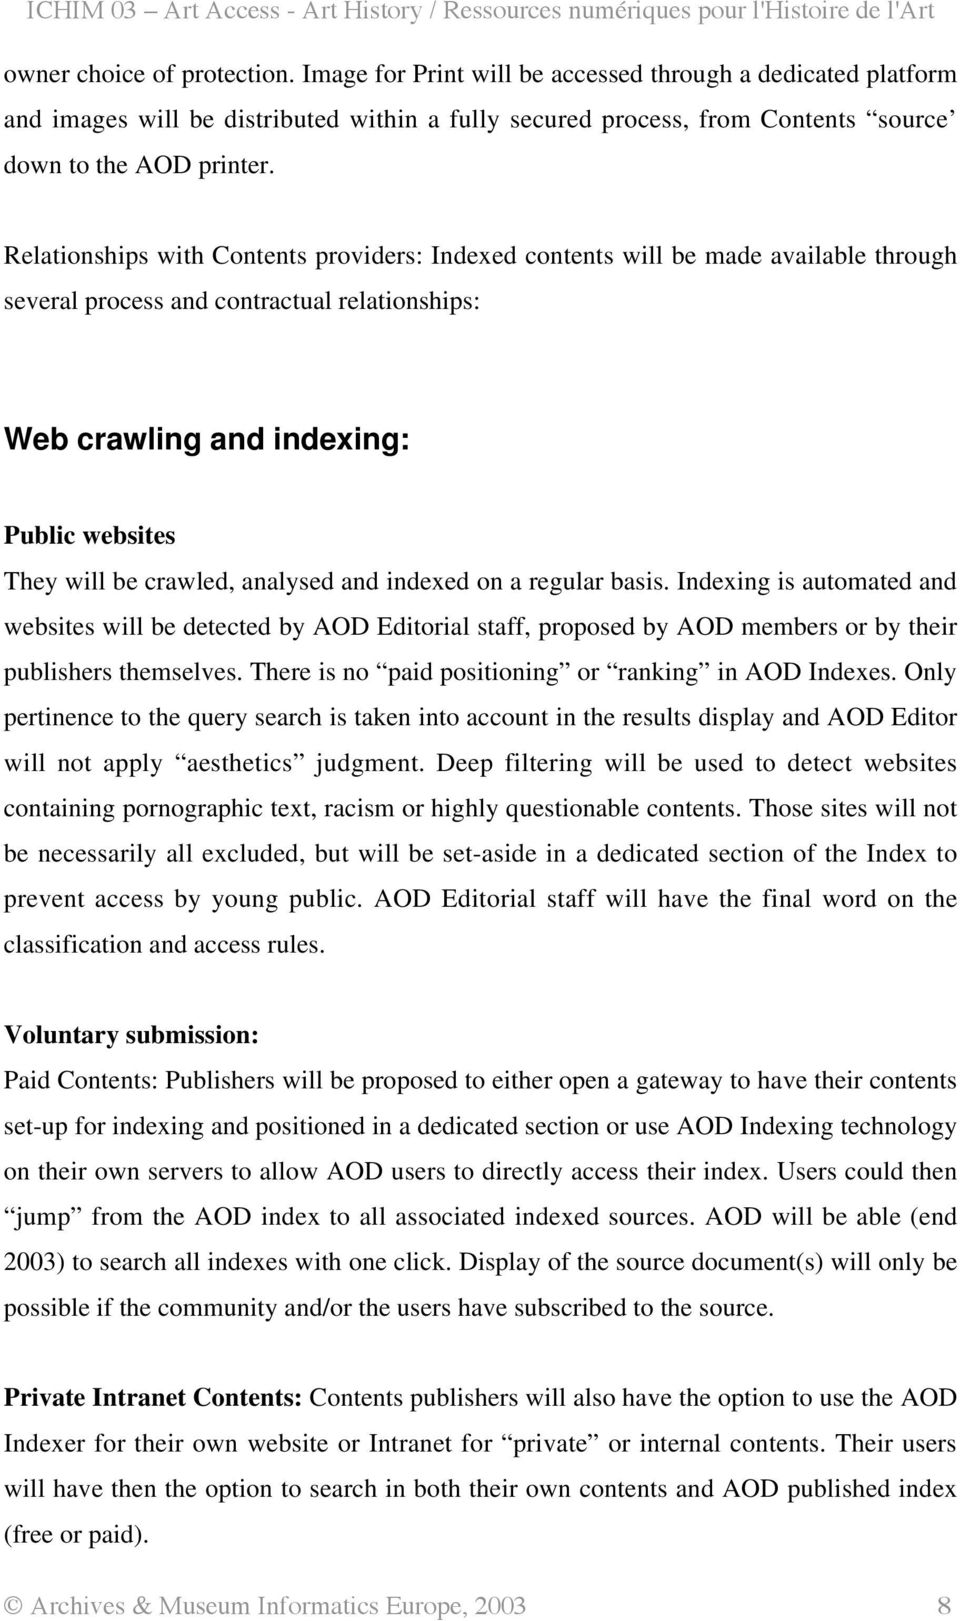 analysed and indexed on a regular basis. Indexing is automated and websites will be detected by AOD Editorial staff, proposed by AOD members or by their publishers themselves.